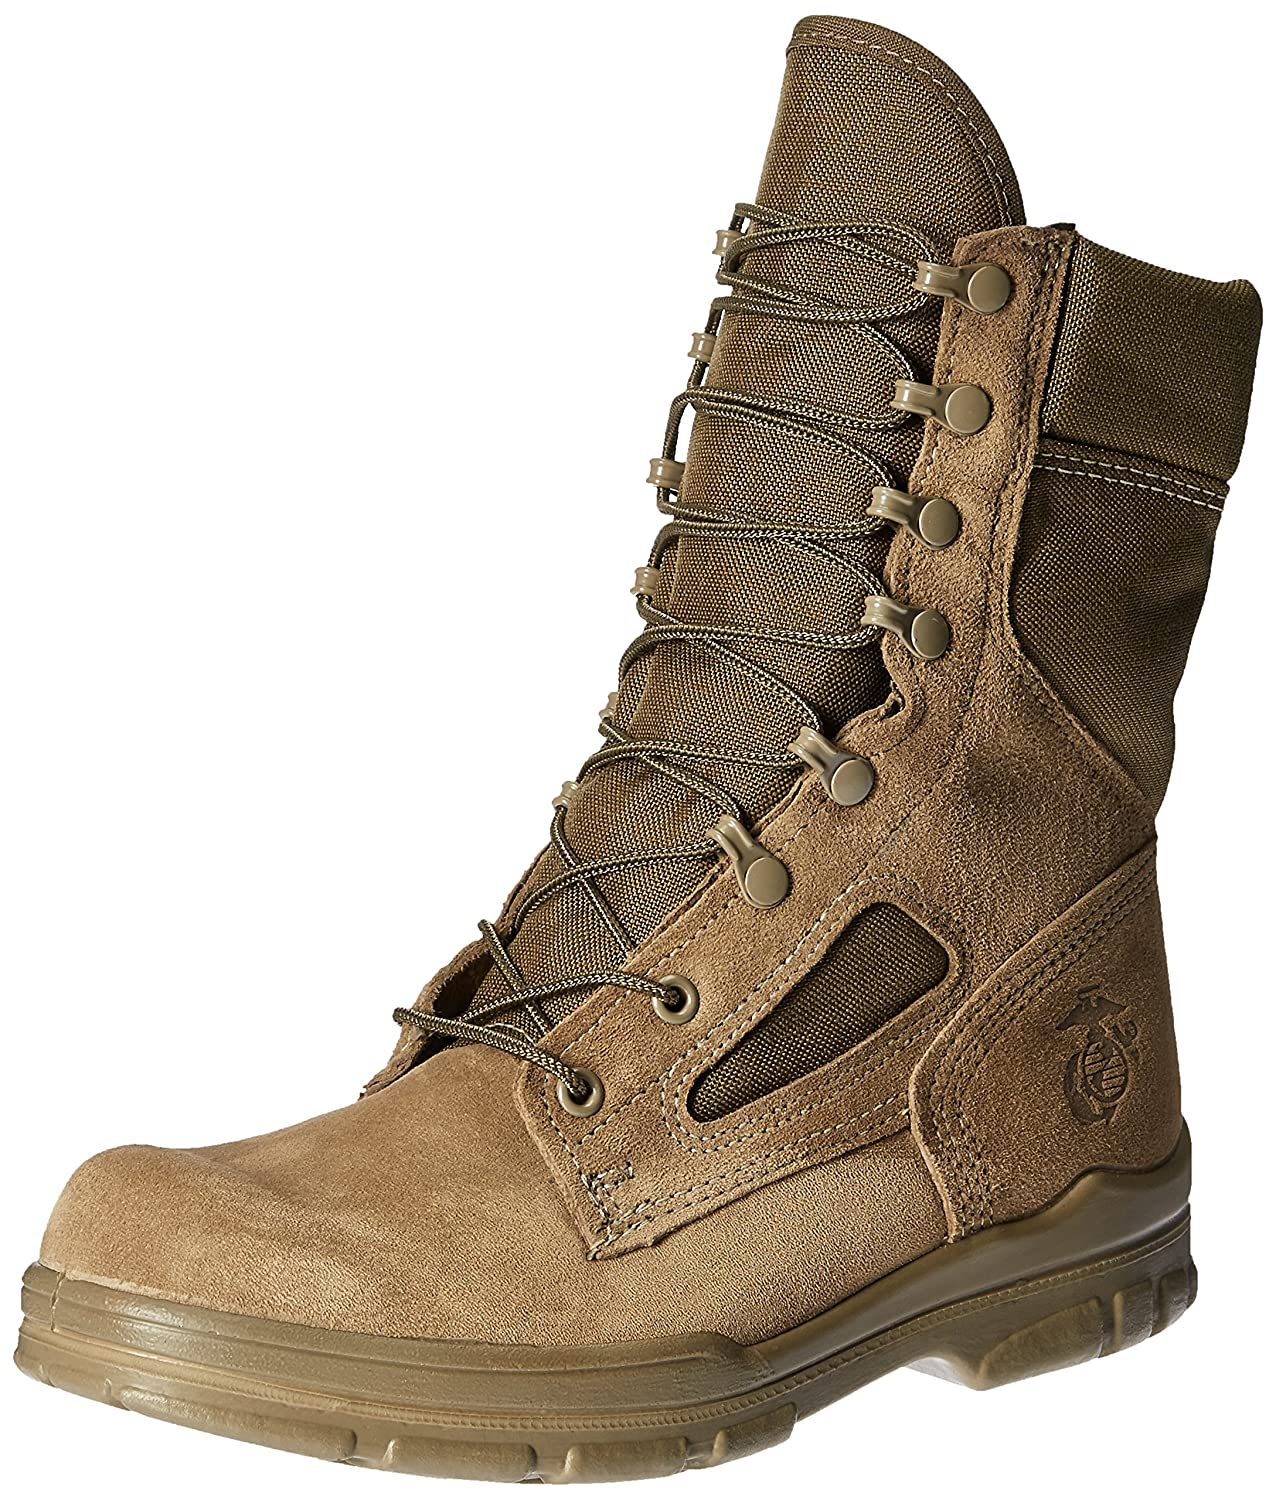 Bates Men's Usmc Lightweight Durashocks Military and Tactical Boot Bates Tactical Footwear USMC LIGHTWEIGHT DURASHOCKS-M